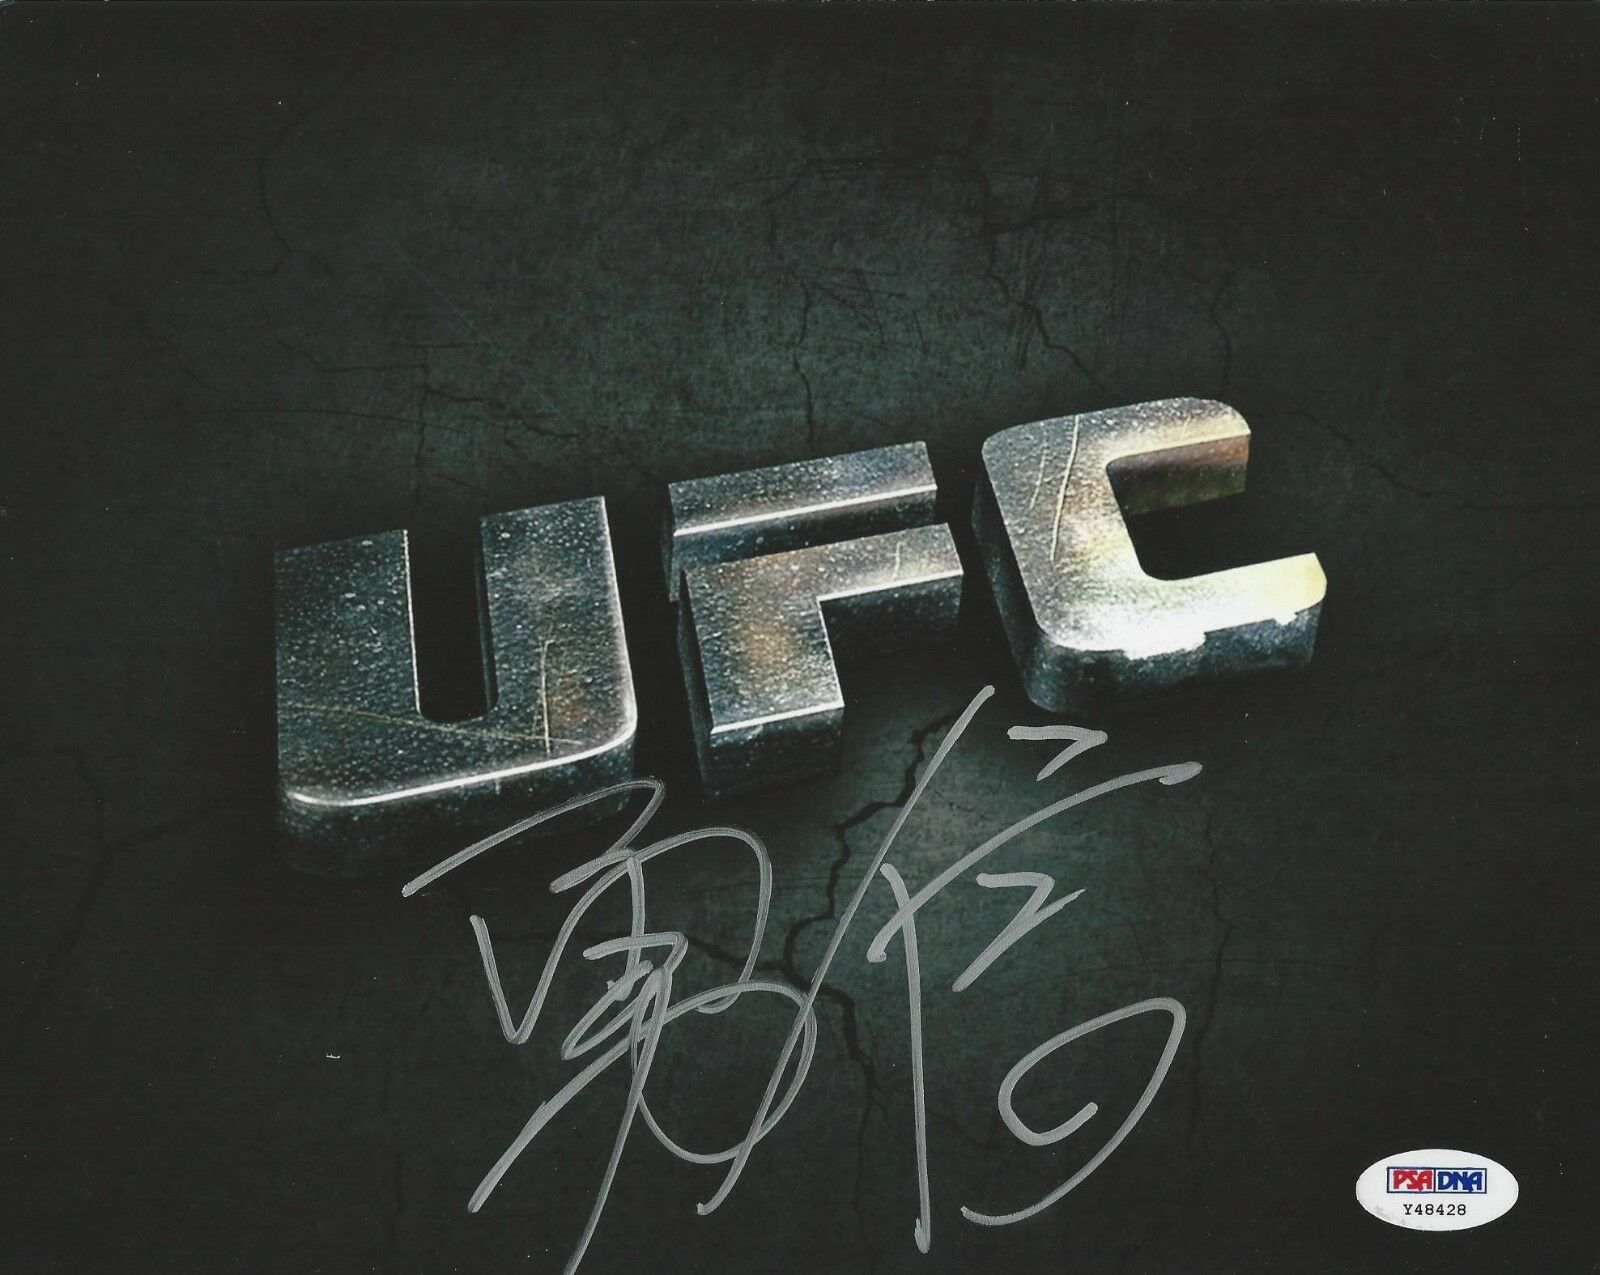 Yushin Okami UFC Fighter signed 8x10 photo PSA/DNA # Y48428